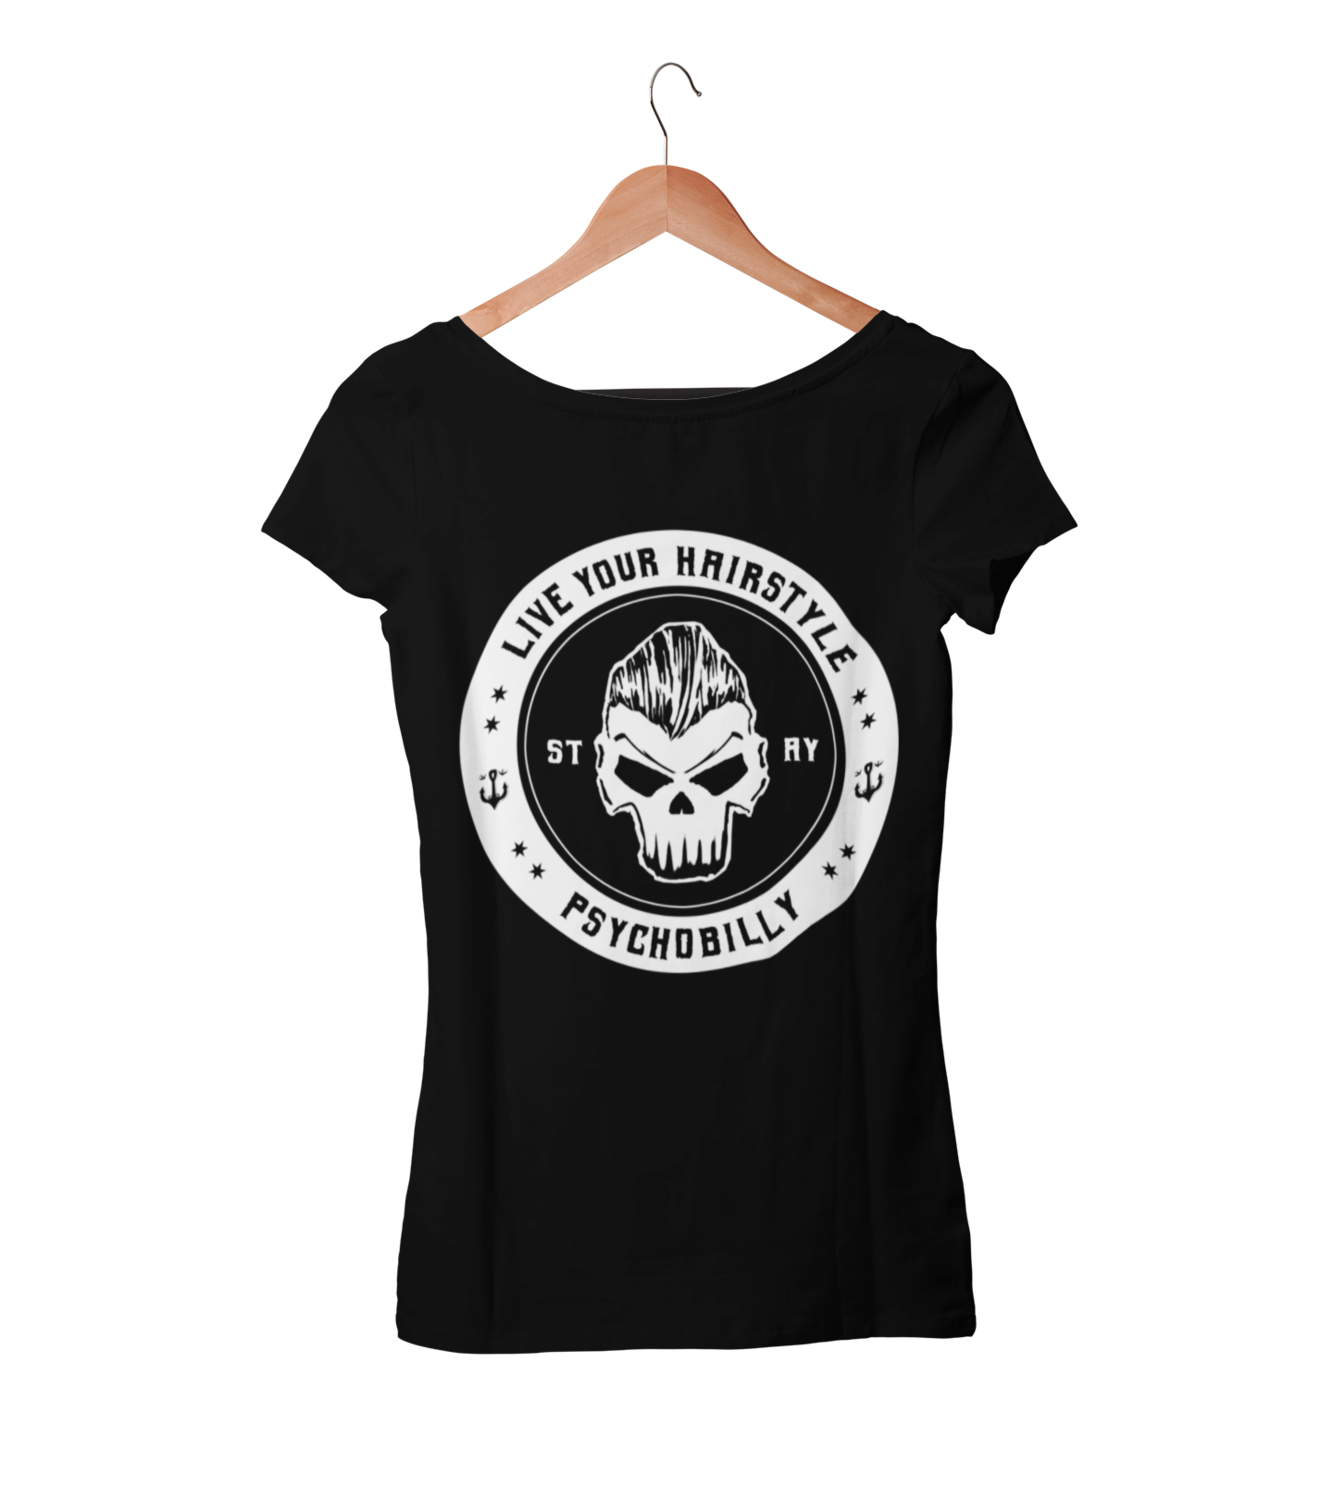 LIVE YOUR HAIRSTYLE T-SHIRT WOMAN BY SUBCULTBILLY DESIGN